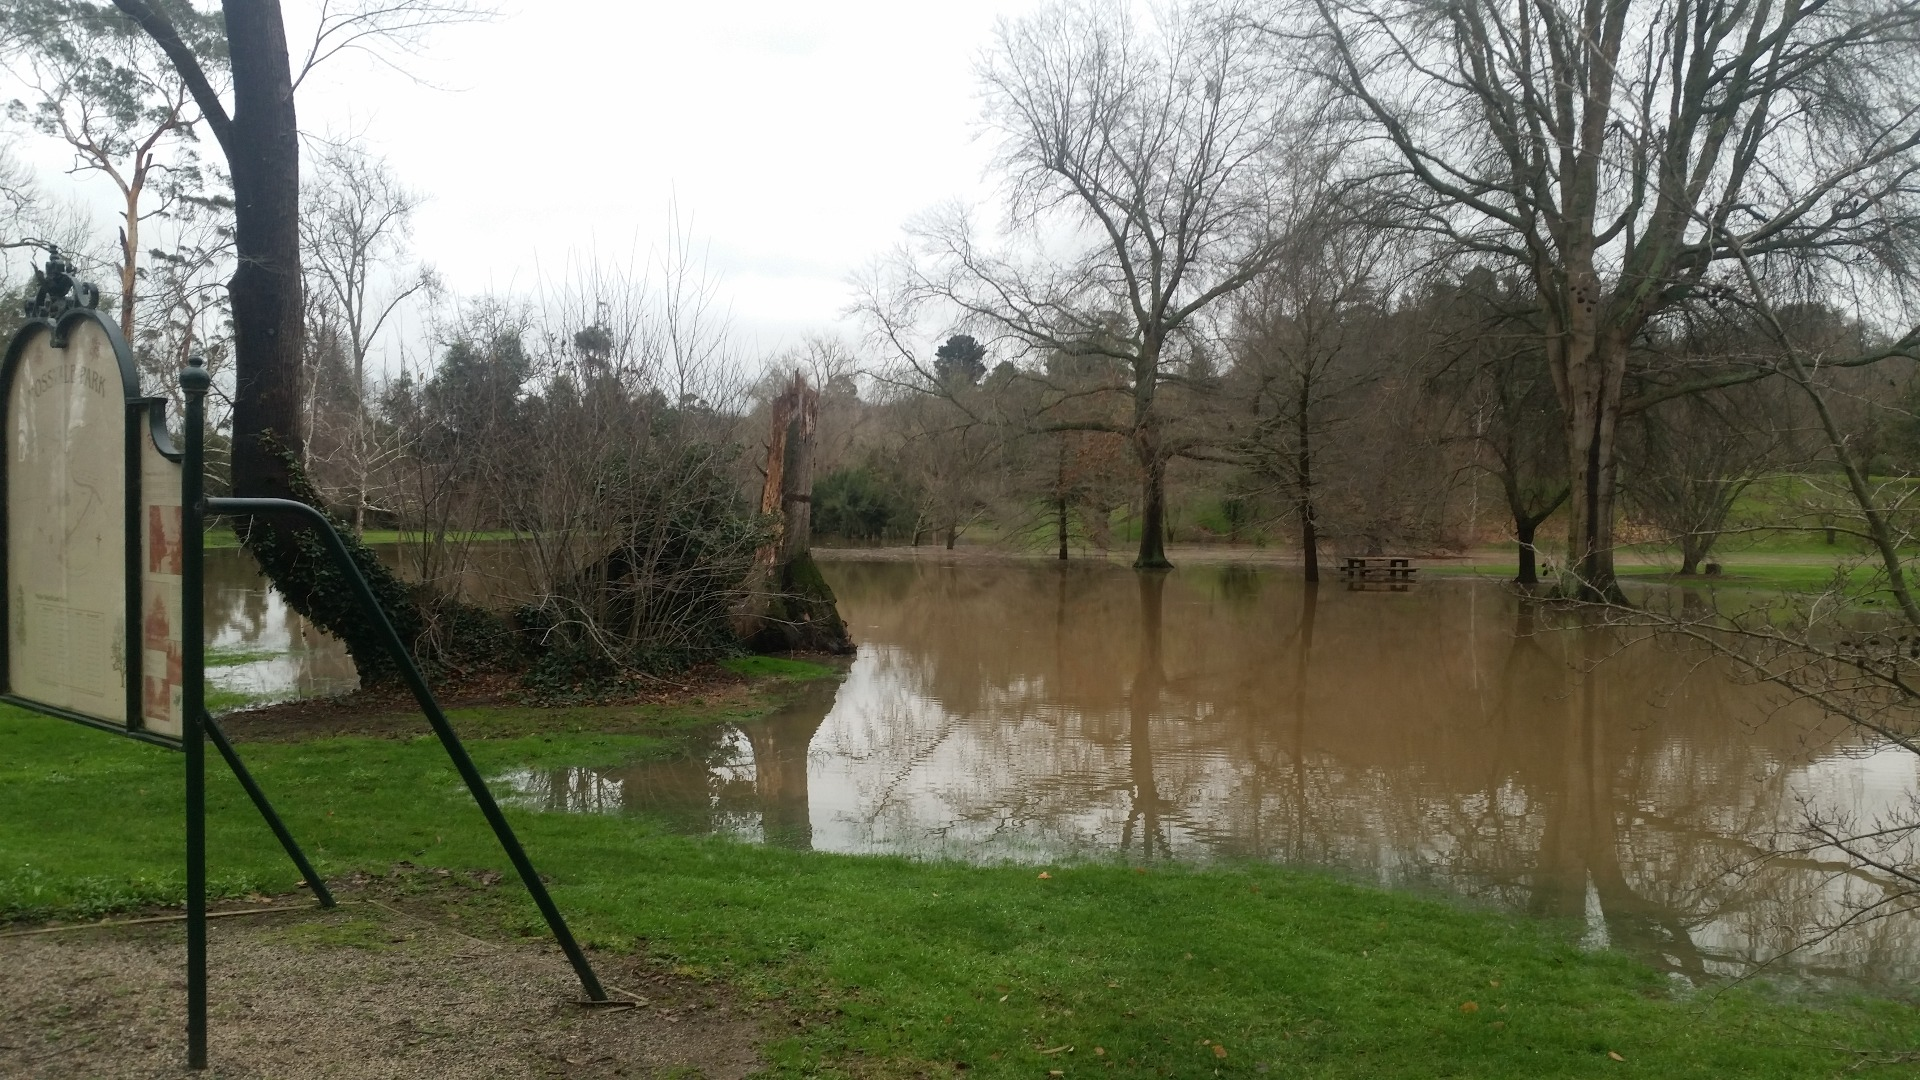 Flood waters/filling of the wetland area that has remained post previous floodings